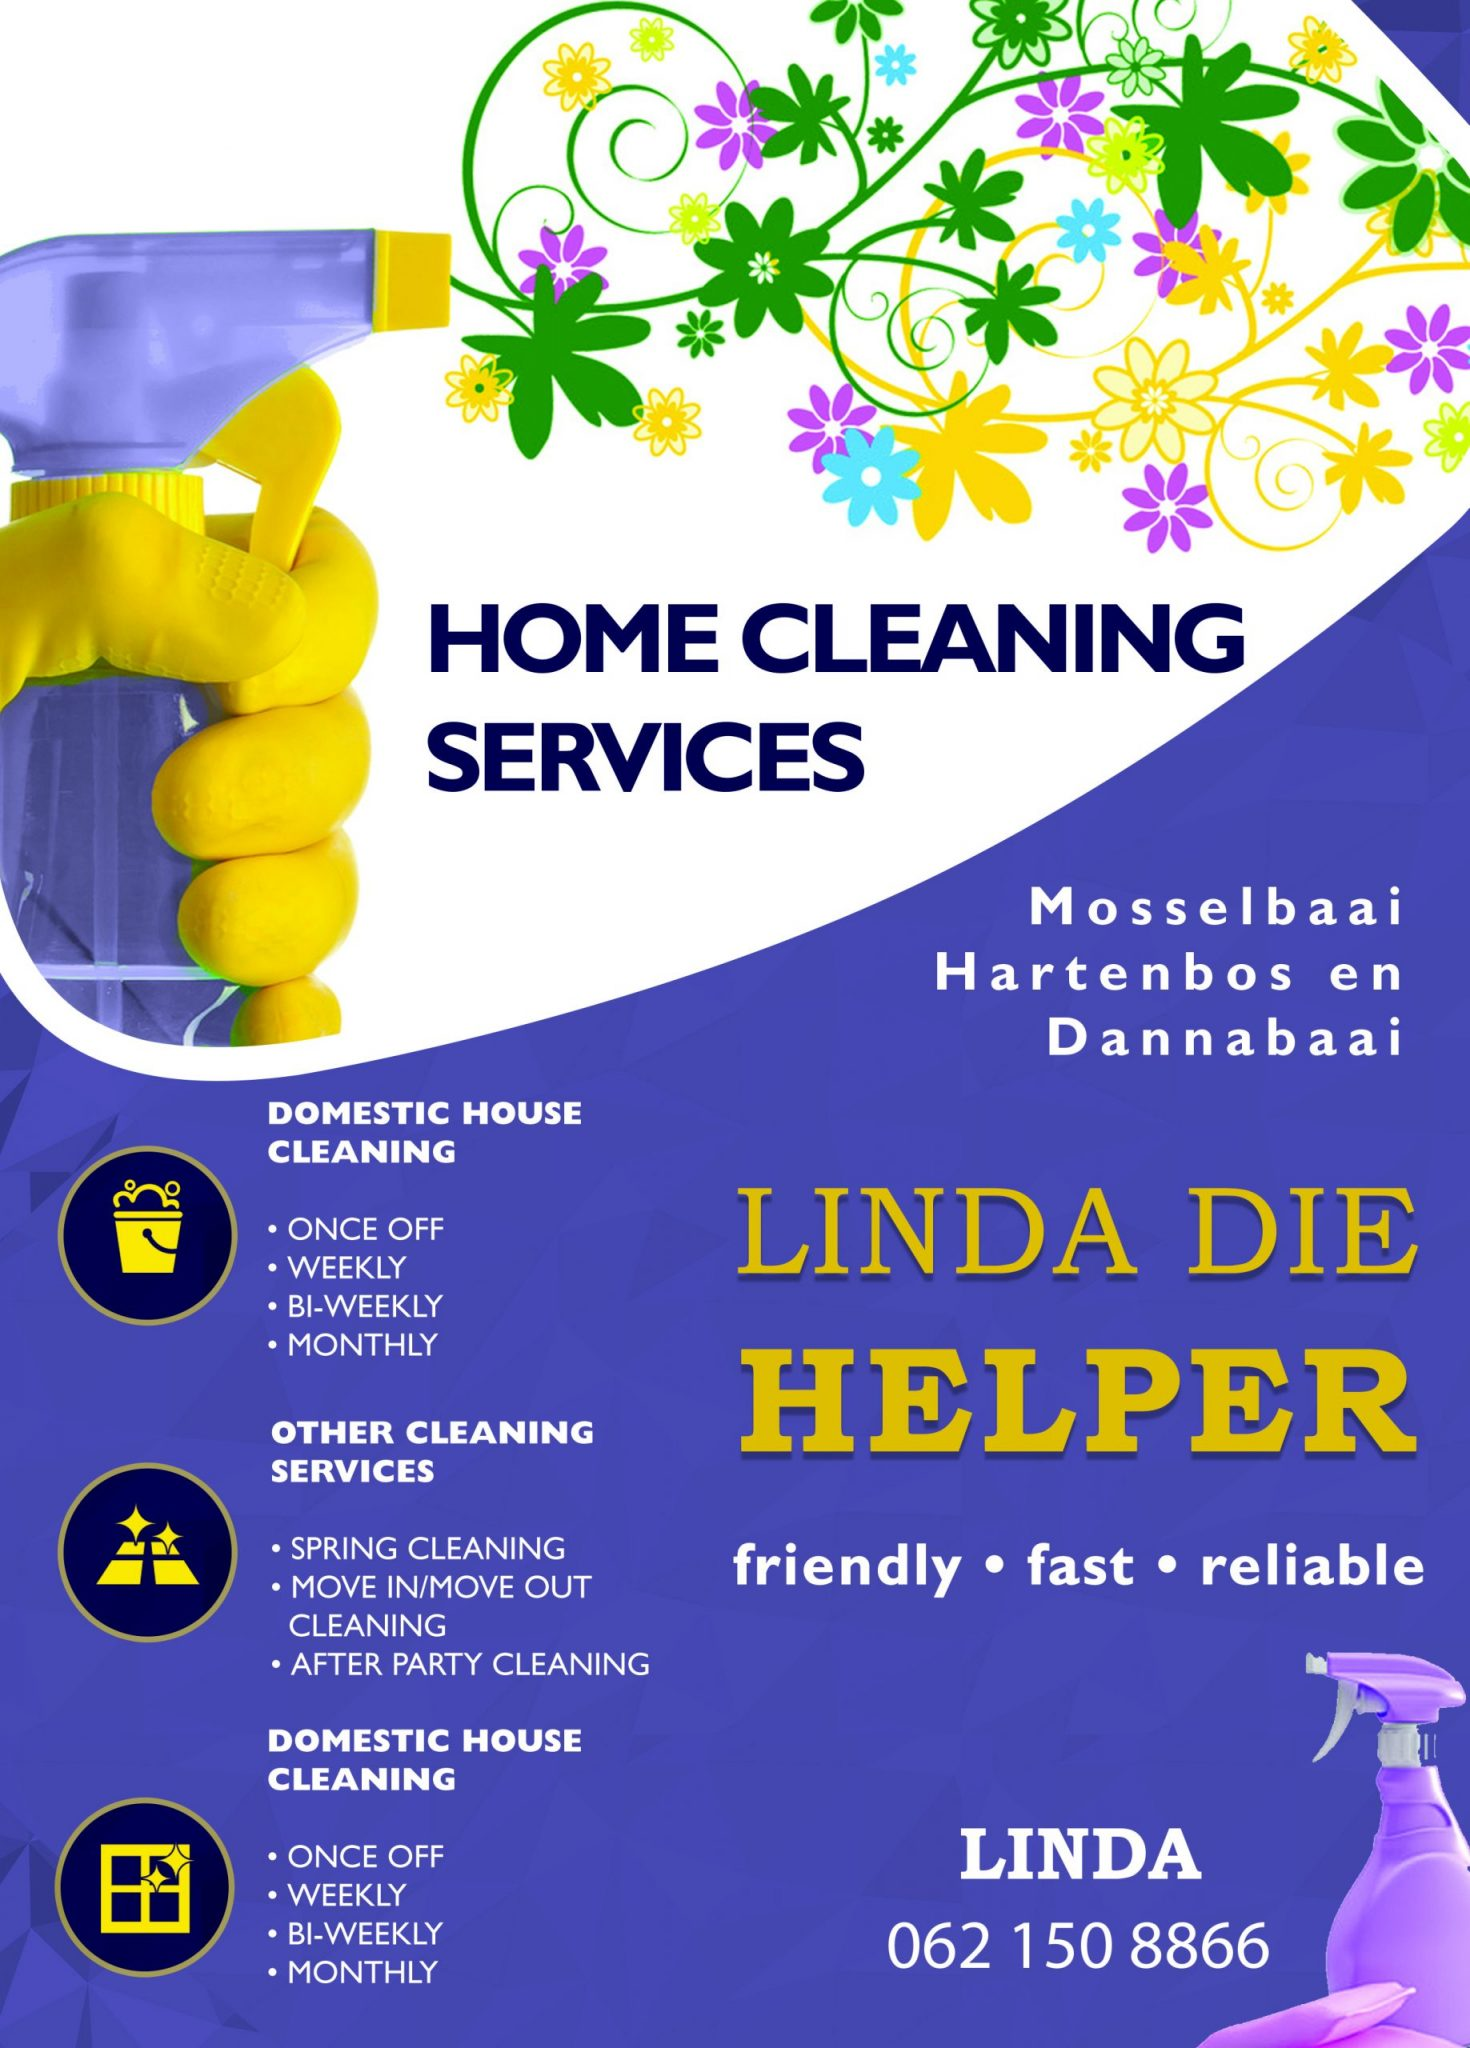 Linda die Helper - Flyer 2